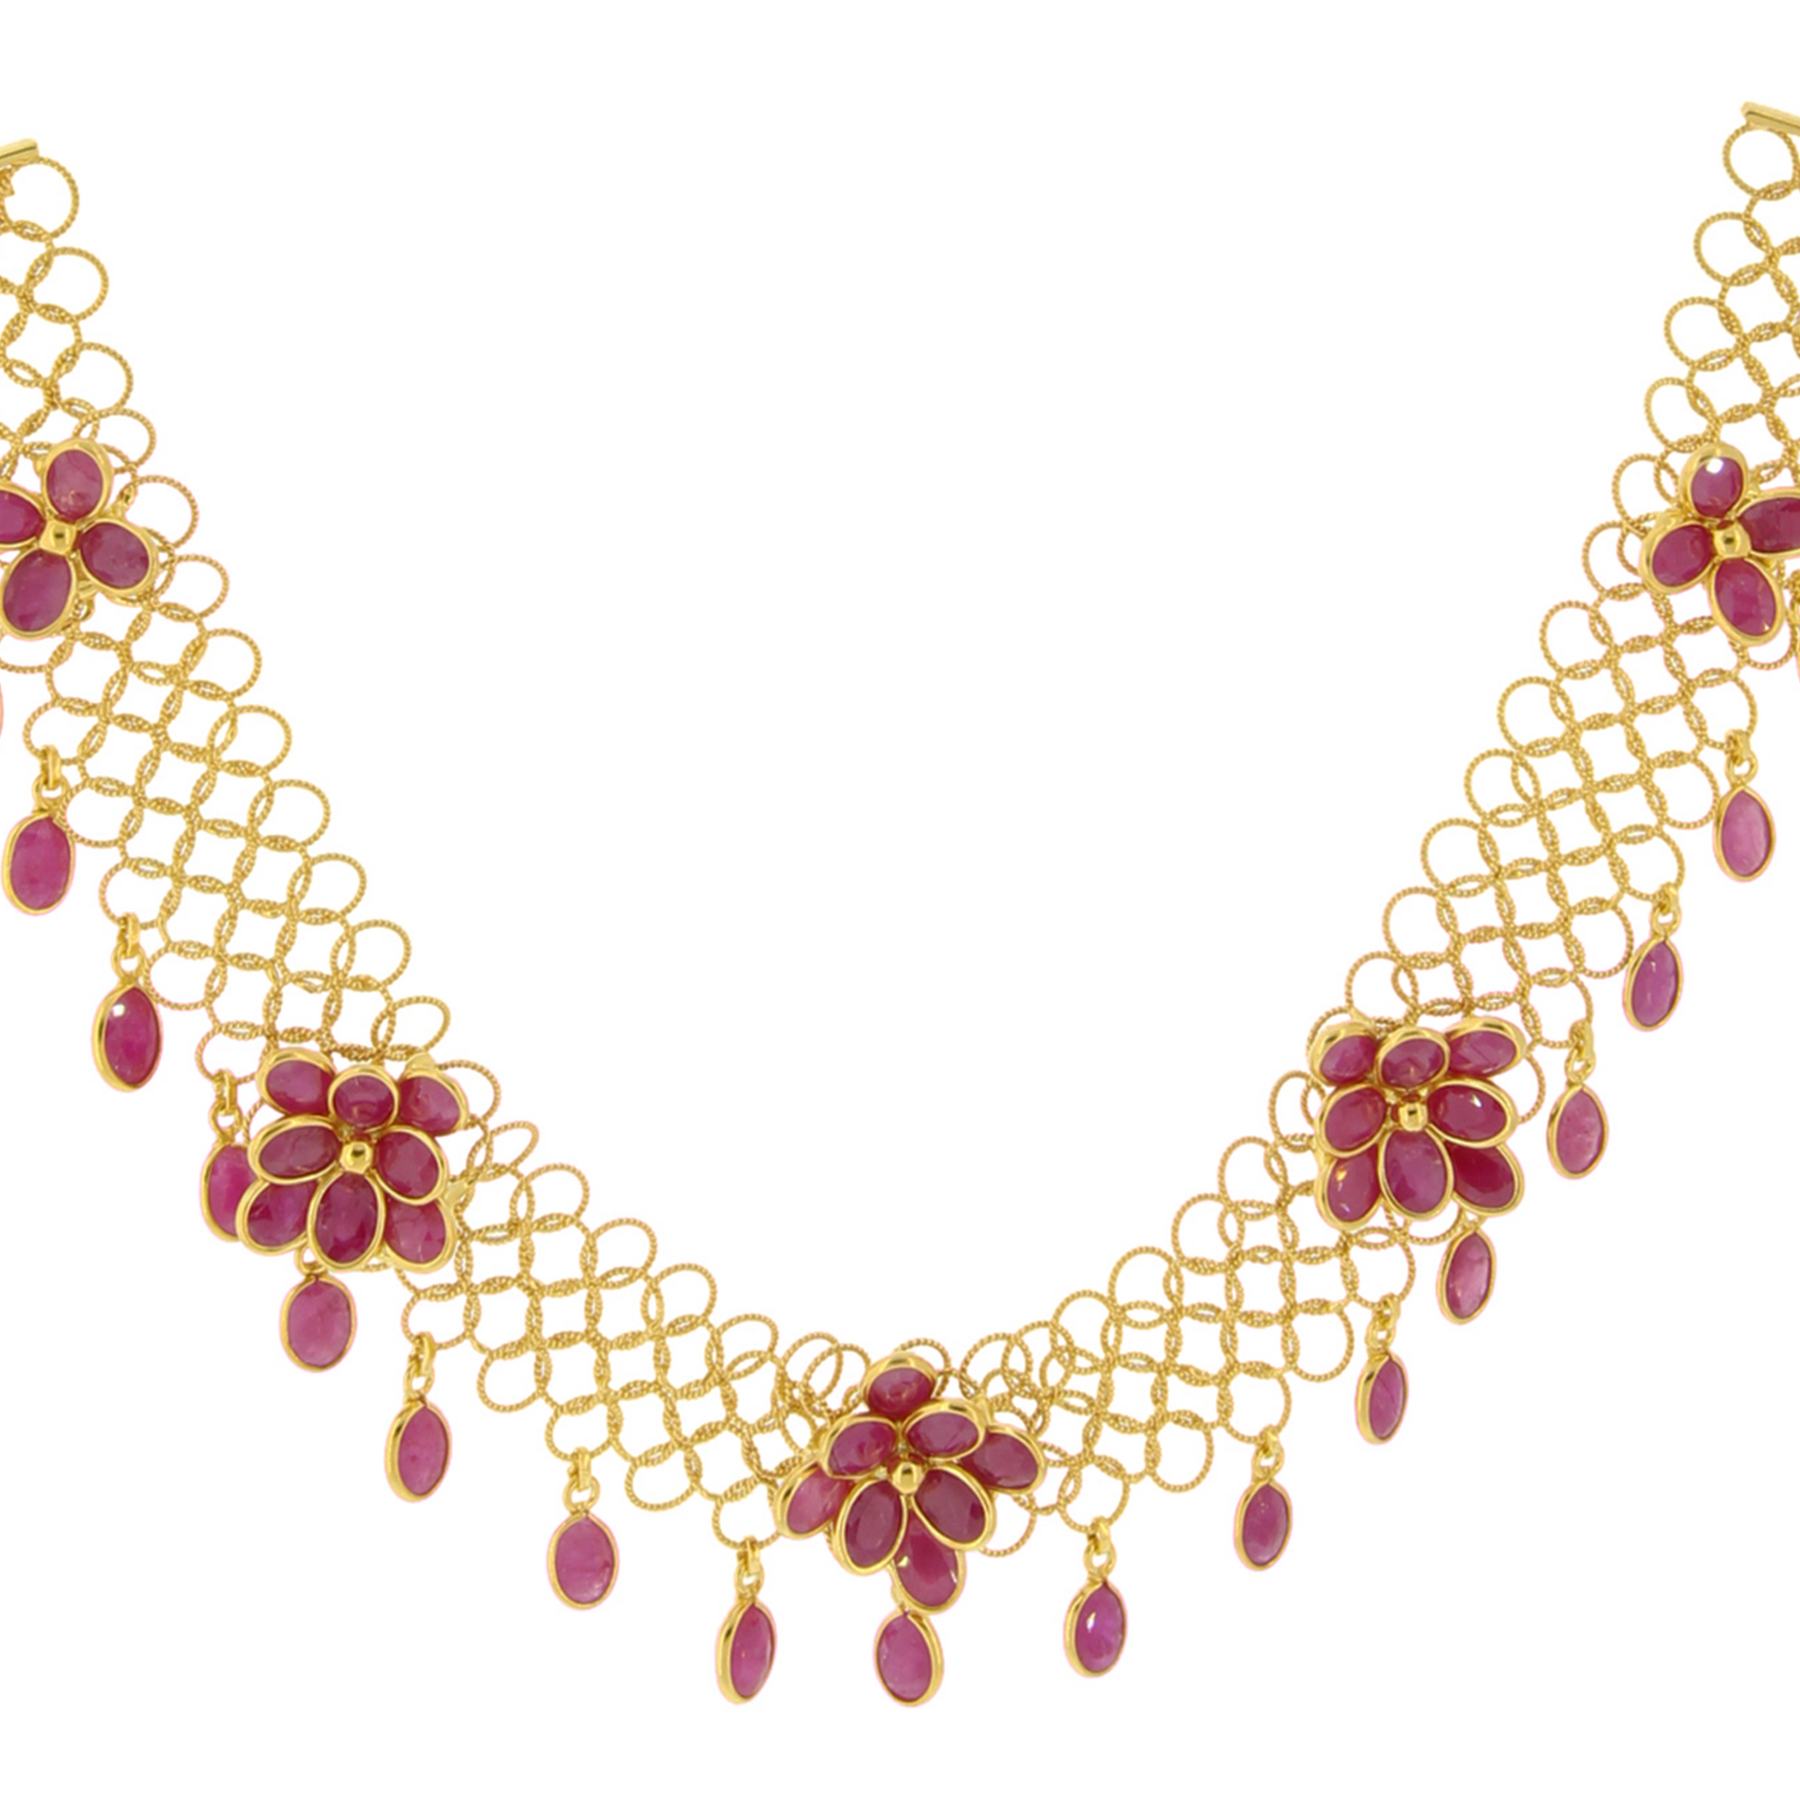 edition yg products necklace jewellery gold ruby limited jewelry